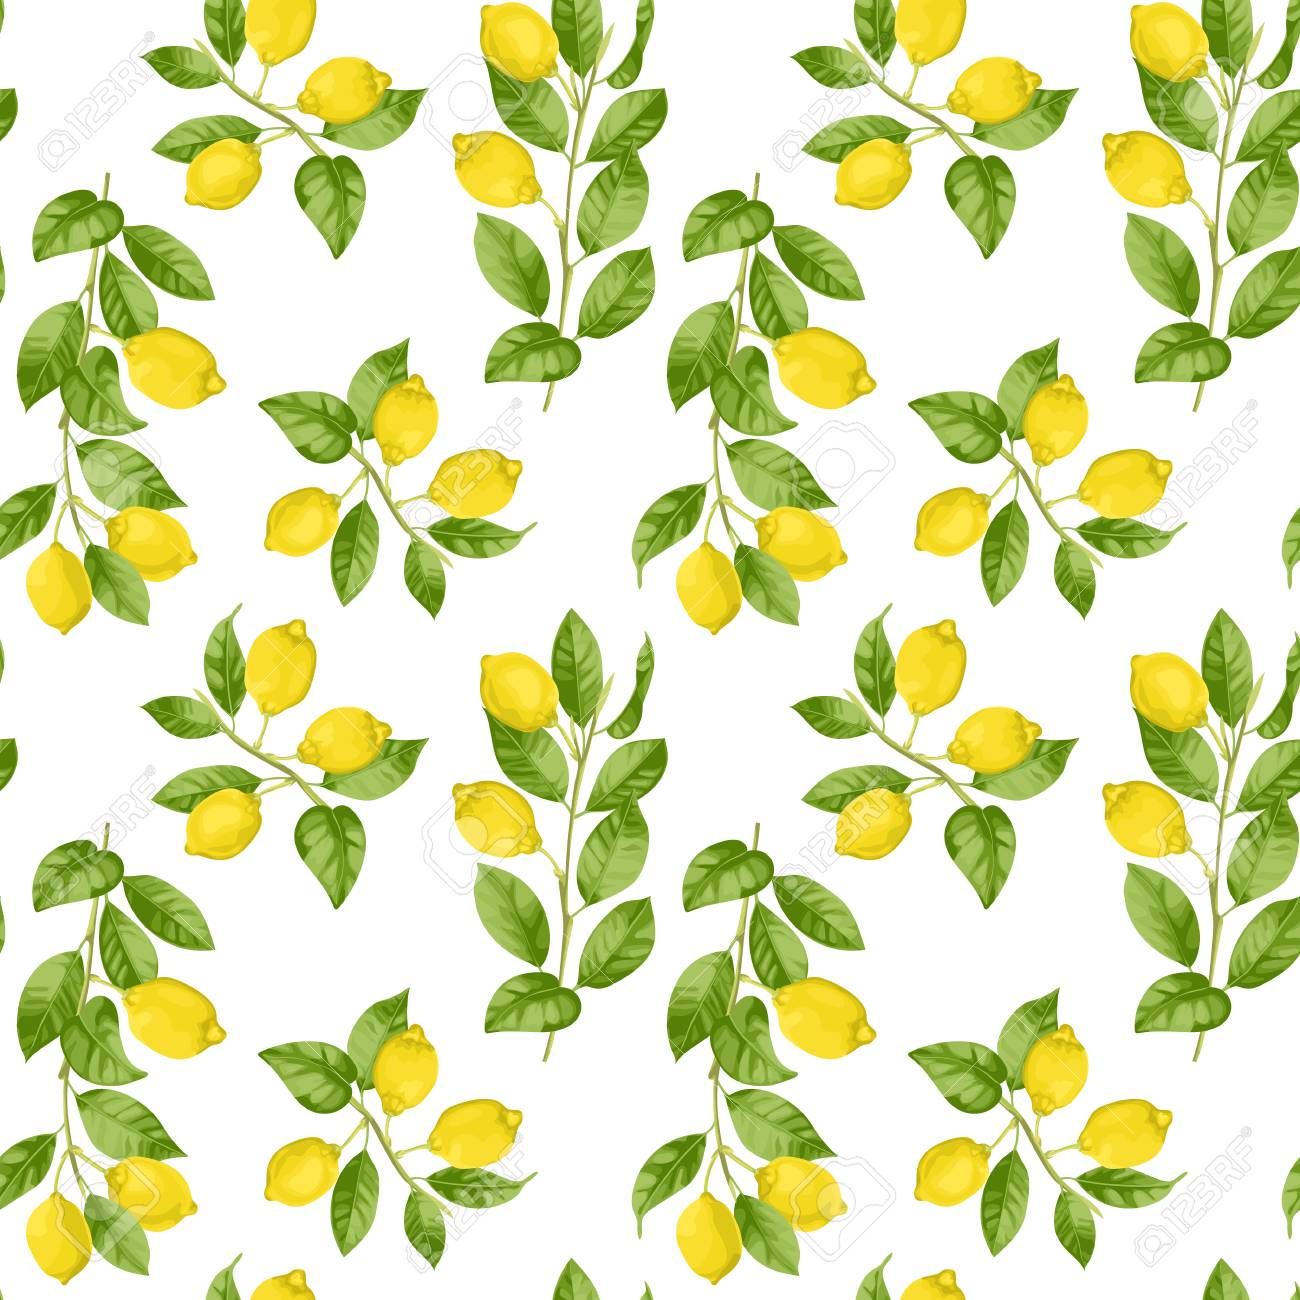 Lemon Brunches Seamless Pattern In Watercolor Style Isolated